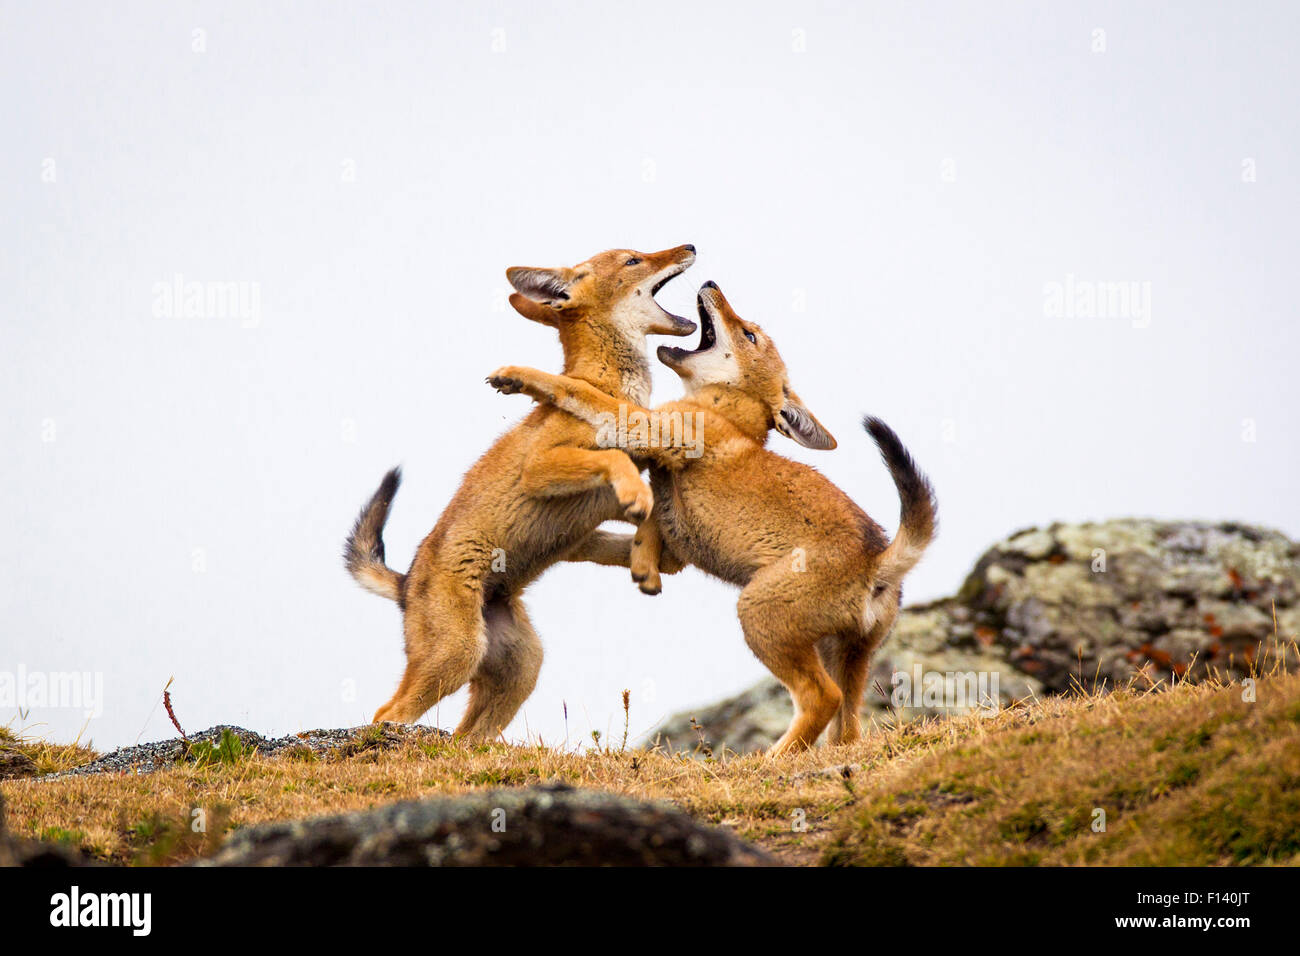 Ethiopian Wolf (Canis simensis) pups play fighting, Bale Mountains National Park, Ethiopia. - Stock Image